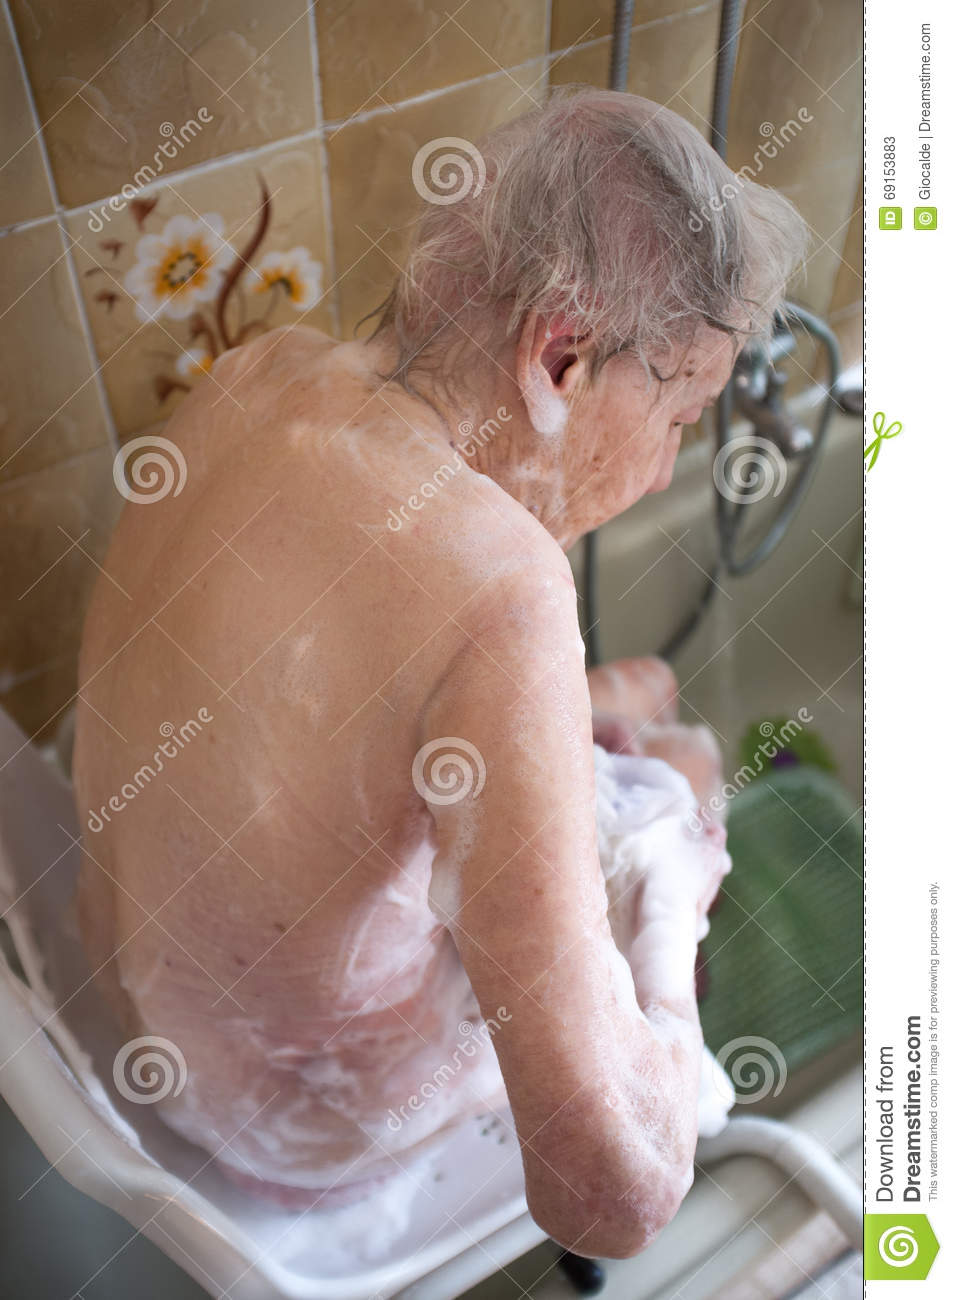 Elderly Woman Taking A Shower Stock Image - Image of infirmity ...